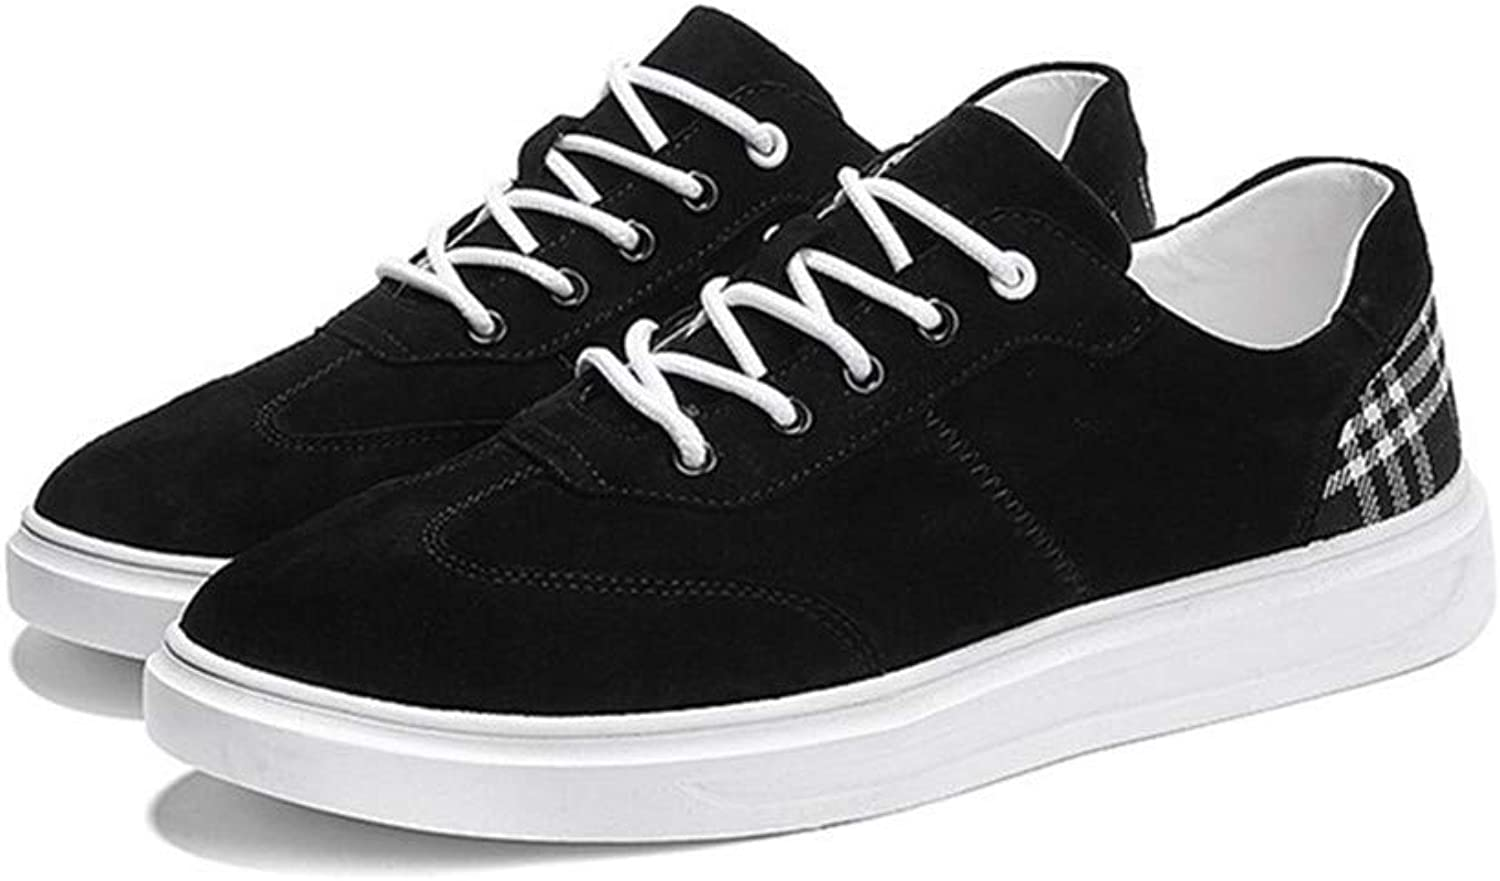 Casual Men's shoes Pig Skin Black Four Seasons Can Wear Board shoes Leisure